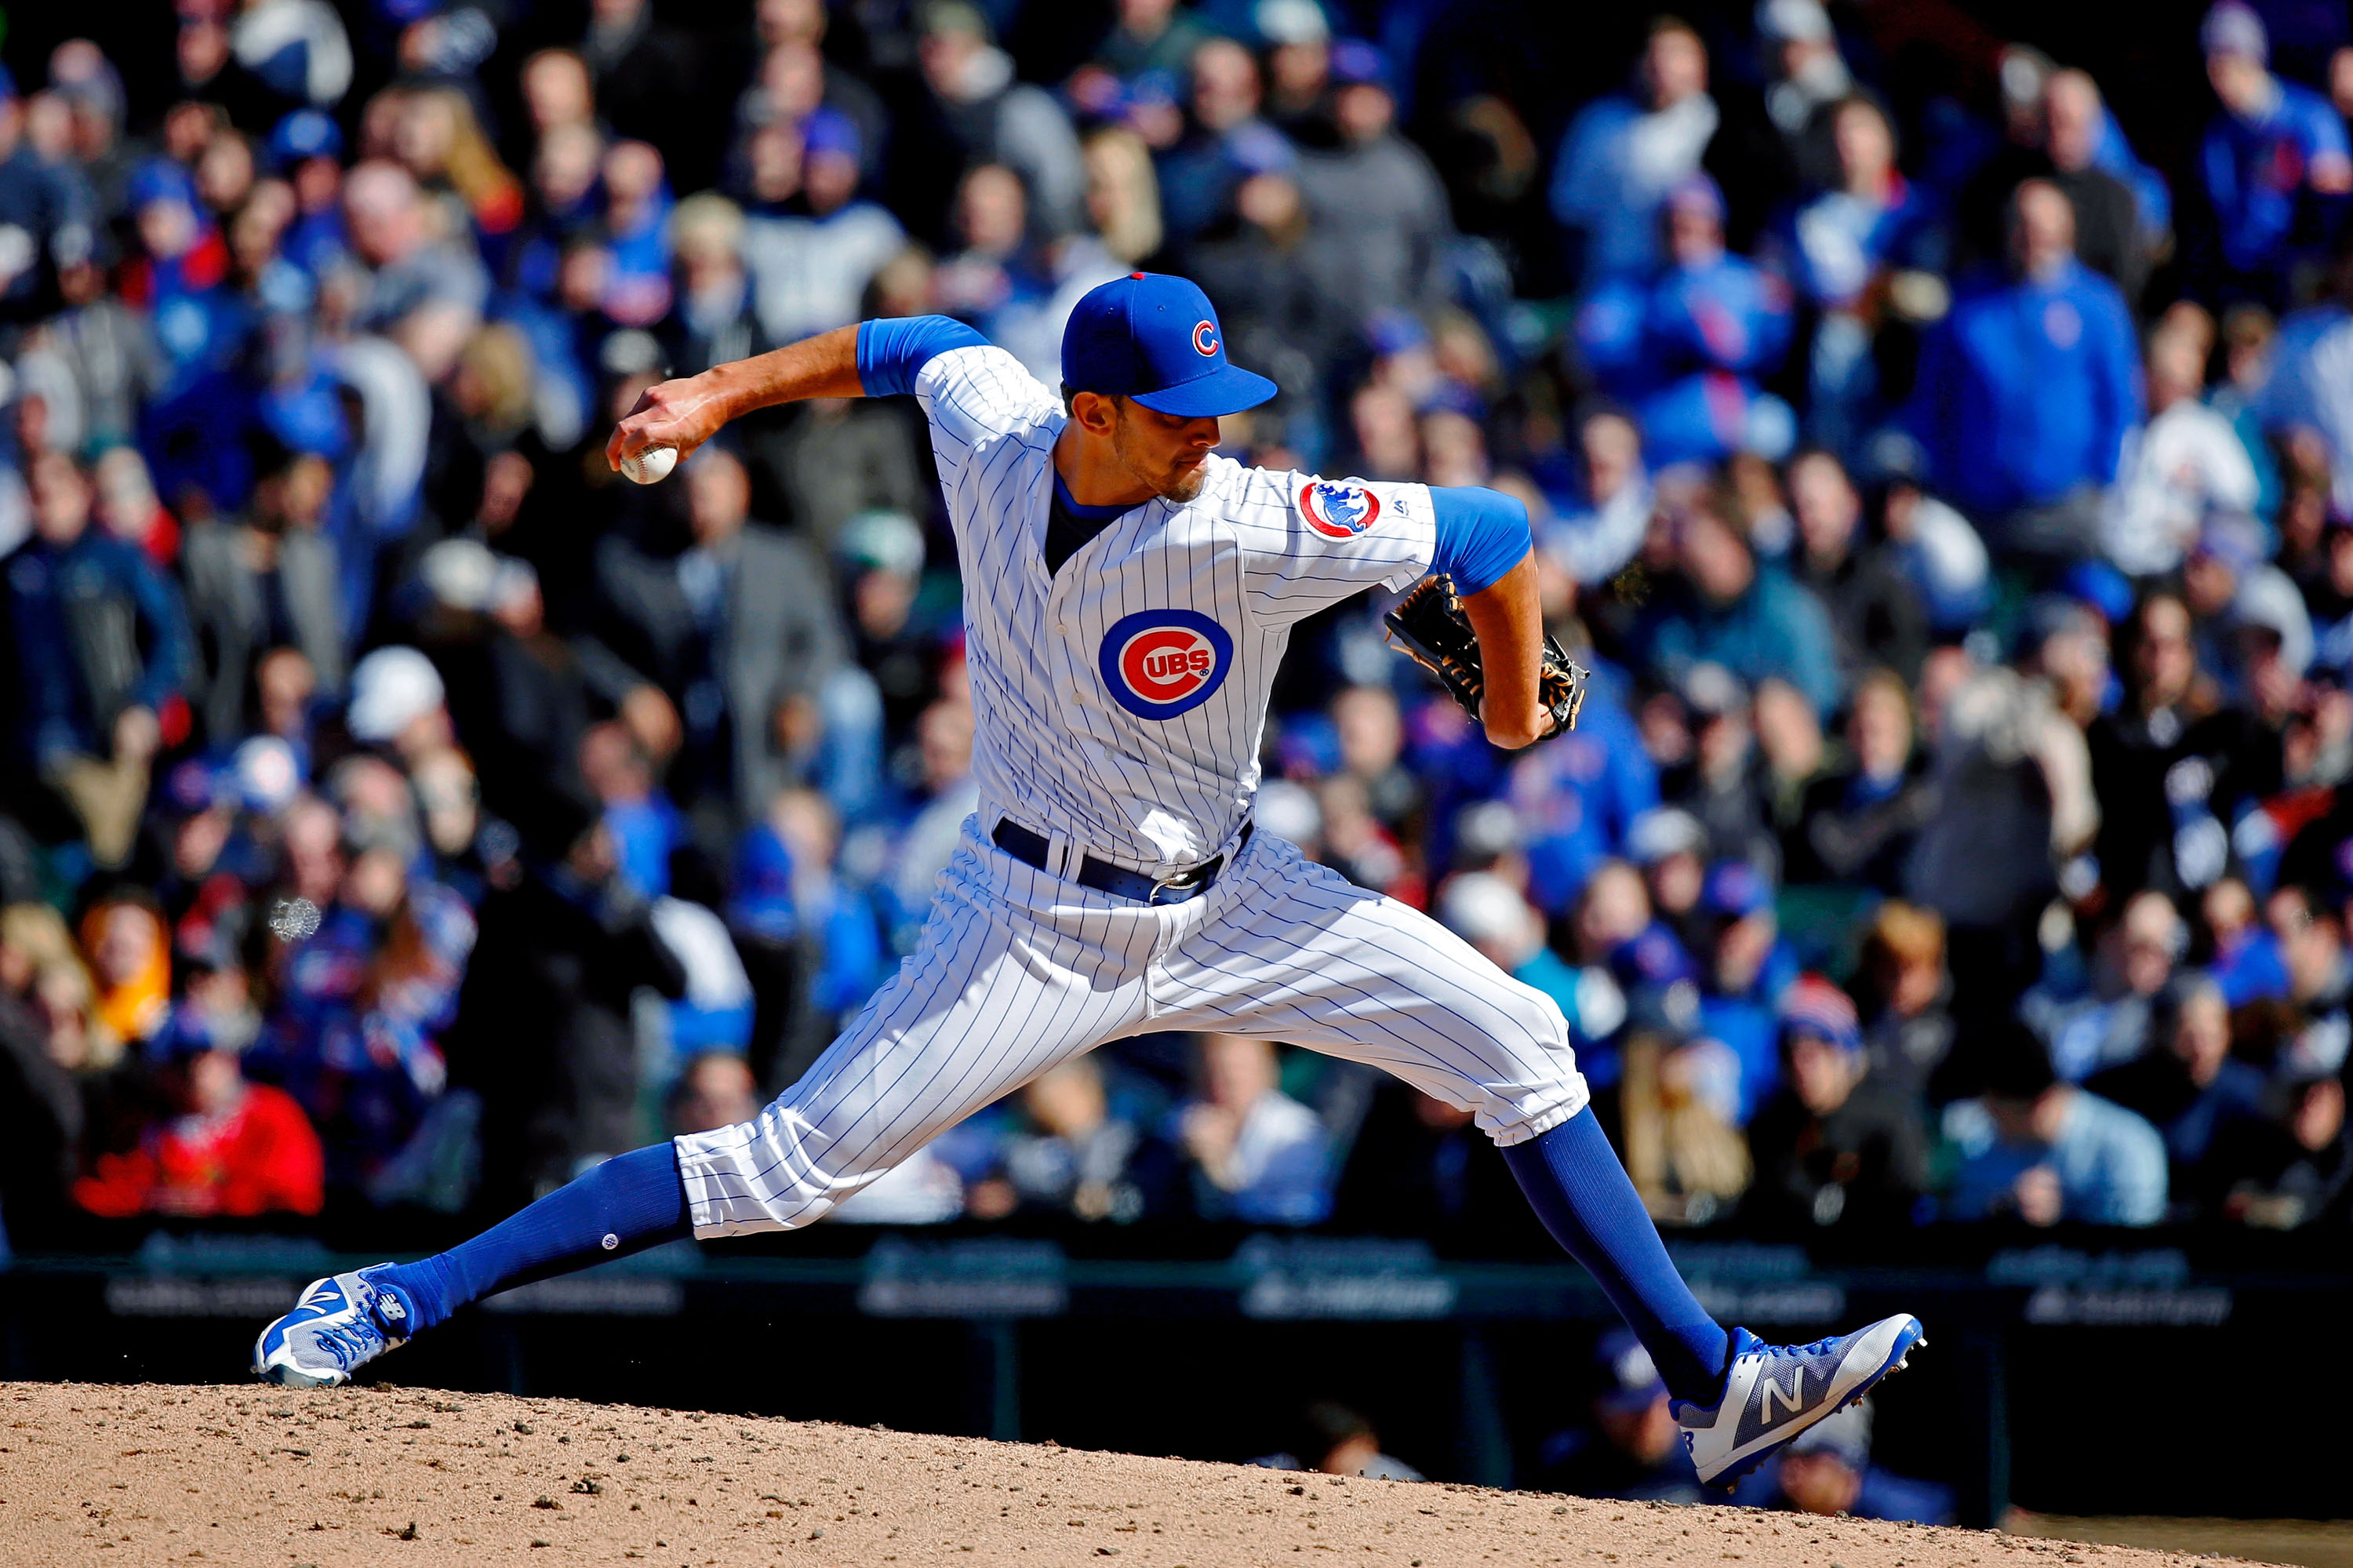 The White Sox have reportedly made a deal with former Cubs reliever Steve Cishek.